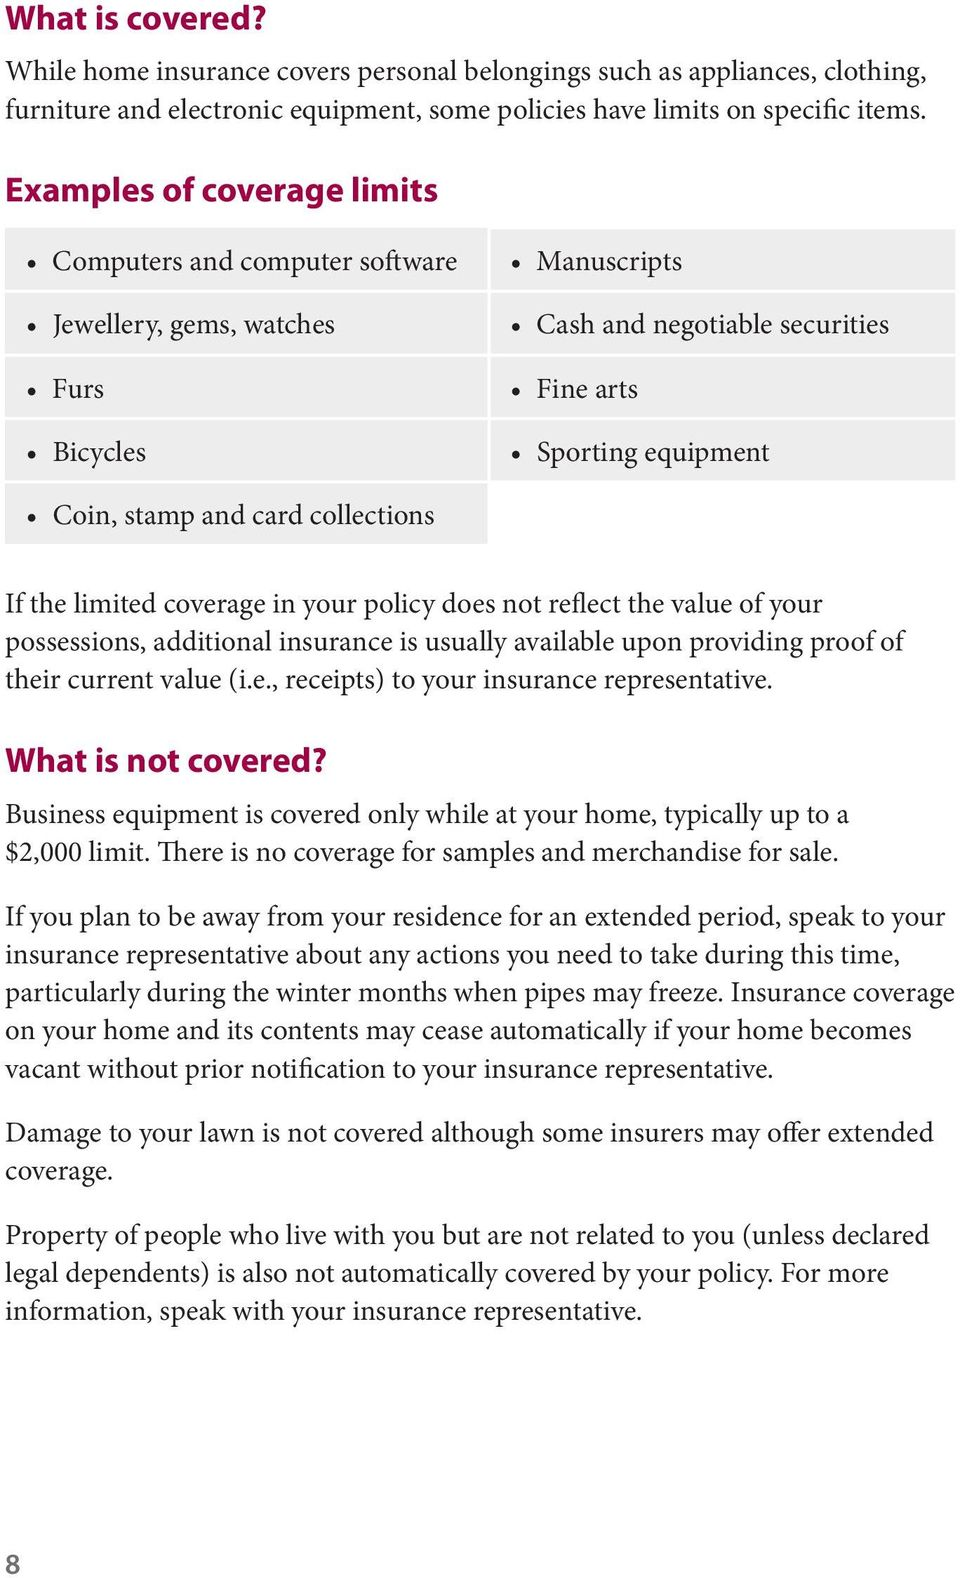 collections If the limited coverage in your policy does not reflect the value of your possessions, additional insurance is usually available upon providing proof of their current value (i.e., receipts) to your insurance representative.